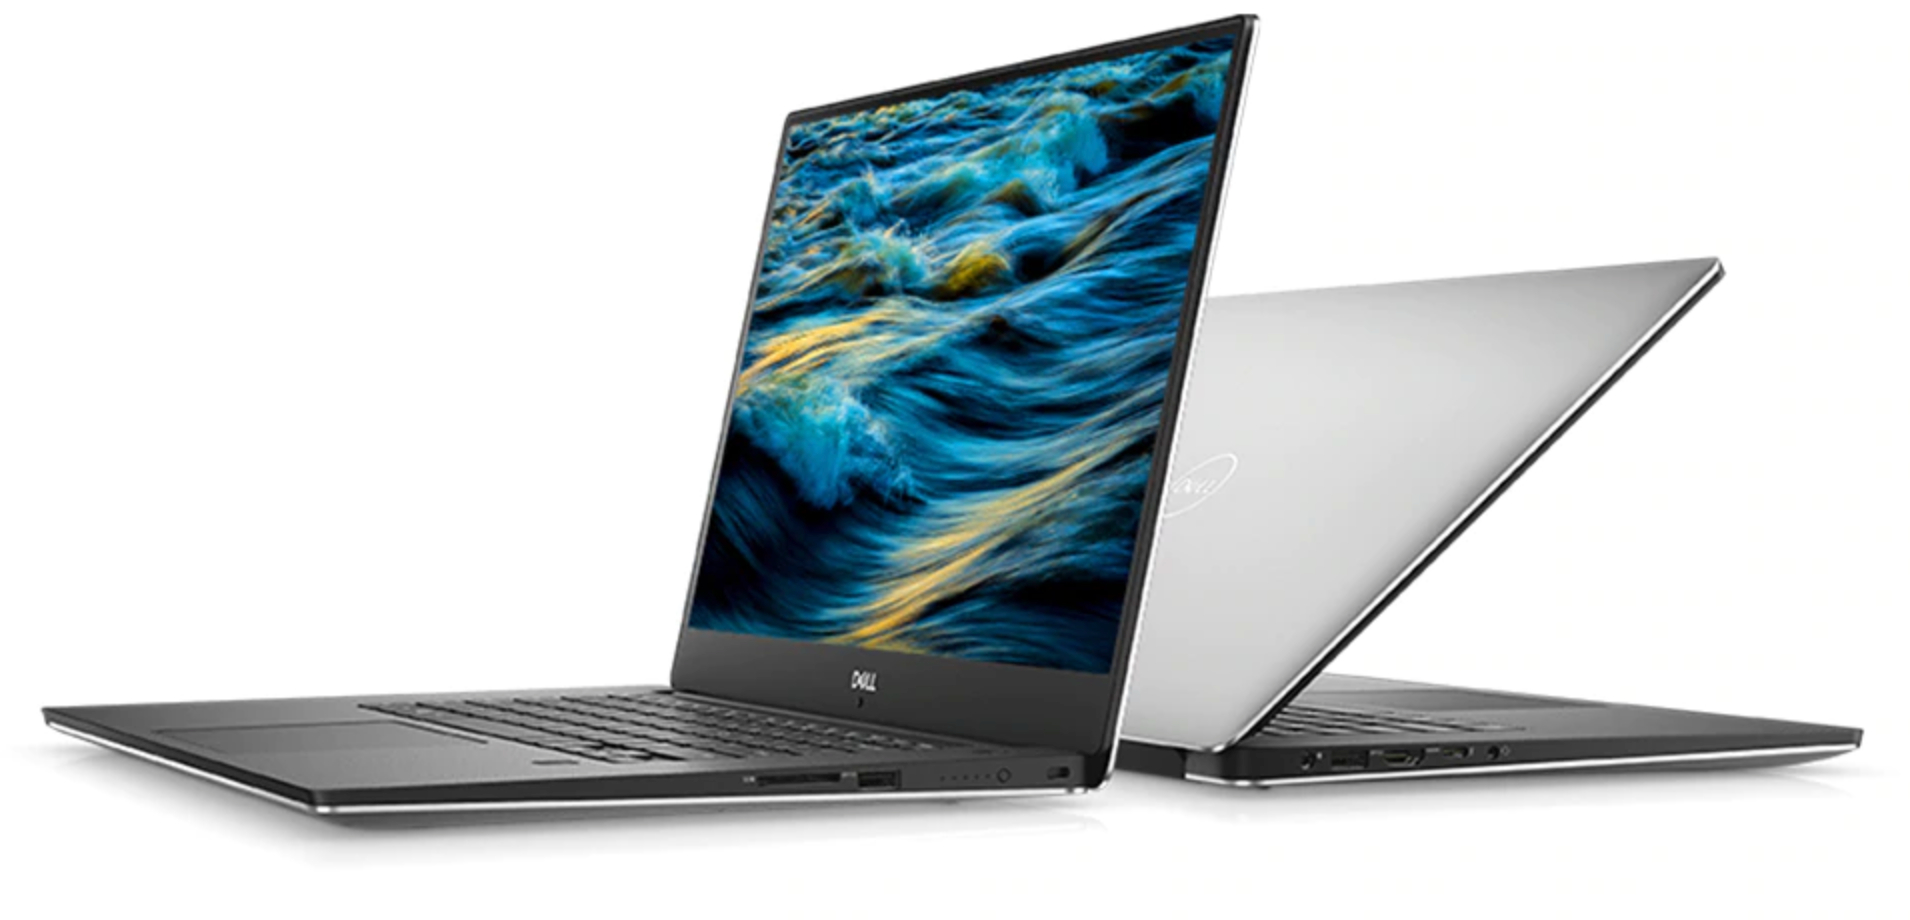 best business laptops for North East companies in 2018-19